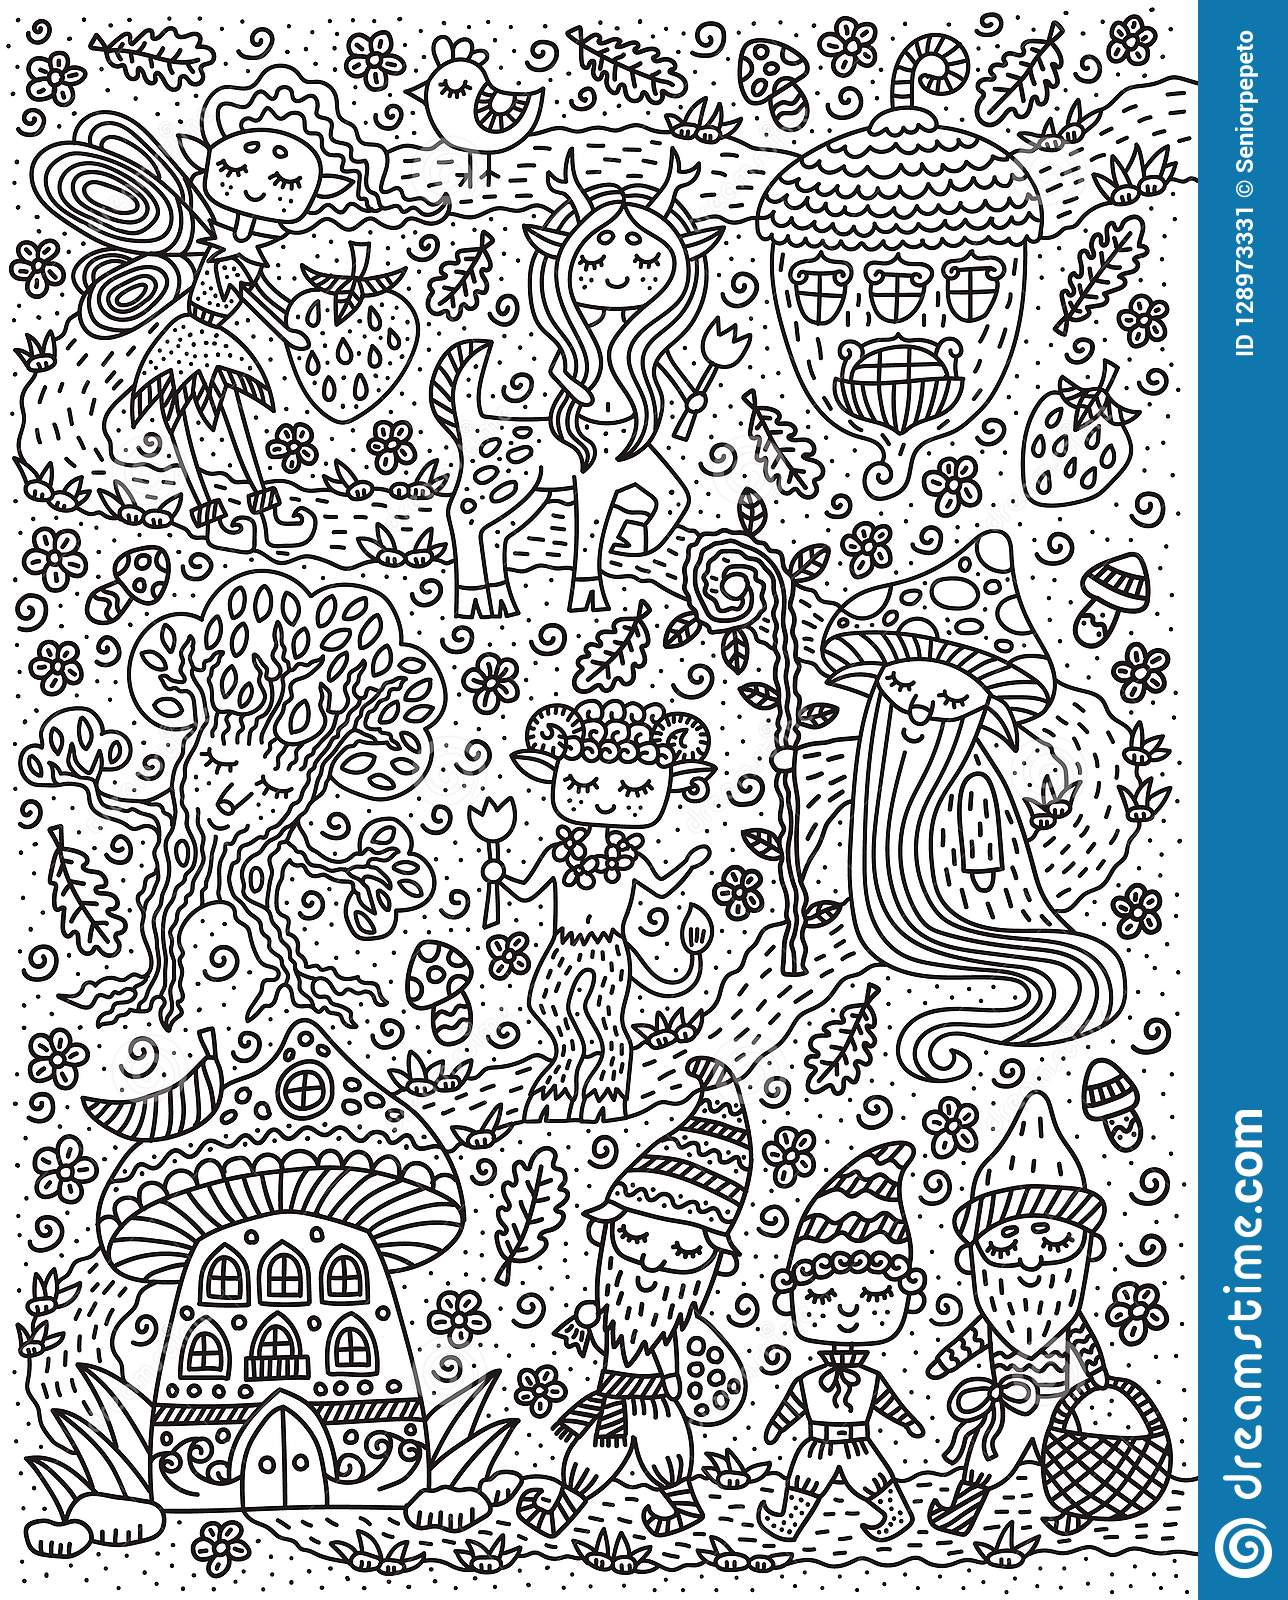 Forest Fairy Tale Fairy Gnome Mage Mushroom Acorn Centaur Tree Coloring Book Page Outline Drawing Vector Illustration Stock Vector Illustration Of Landscape Fairytale 128973331